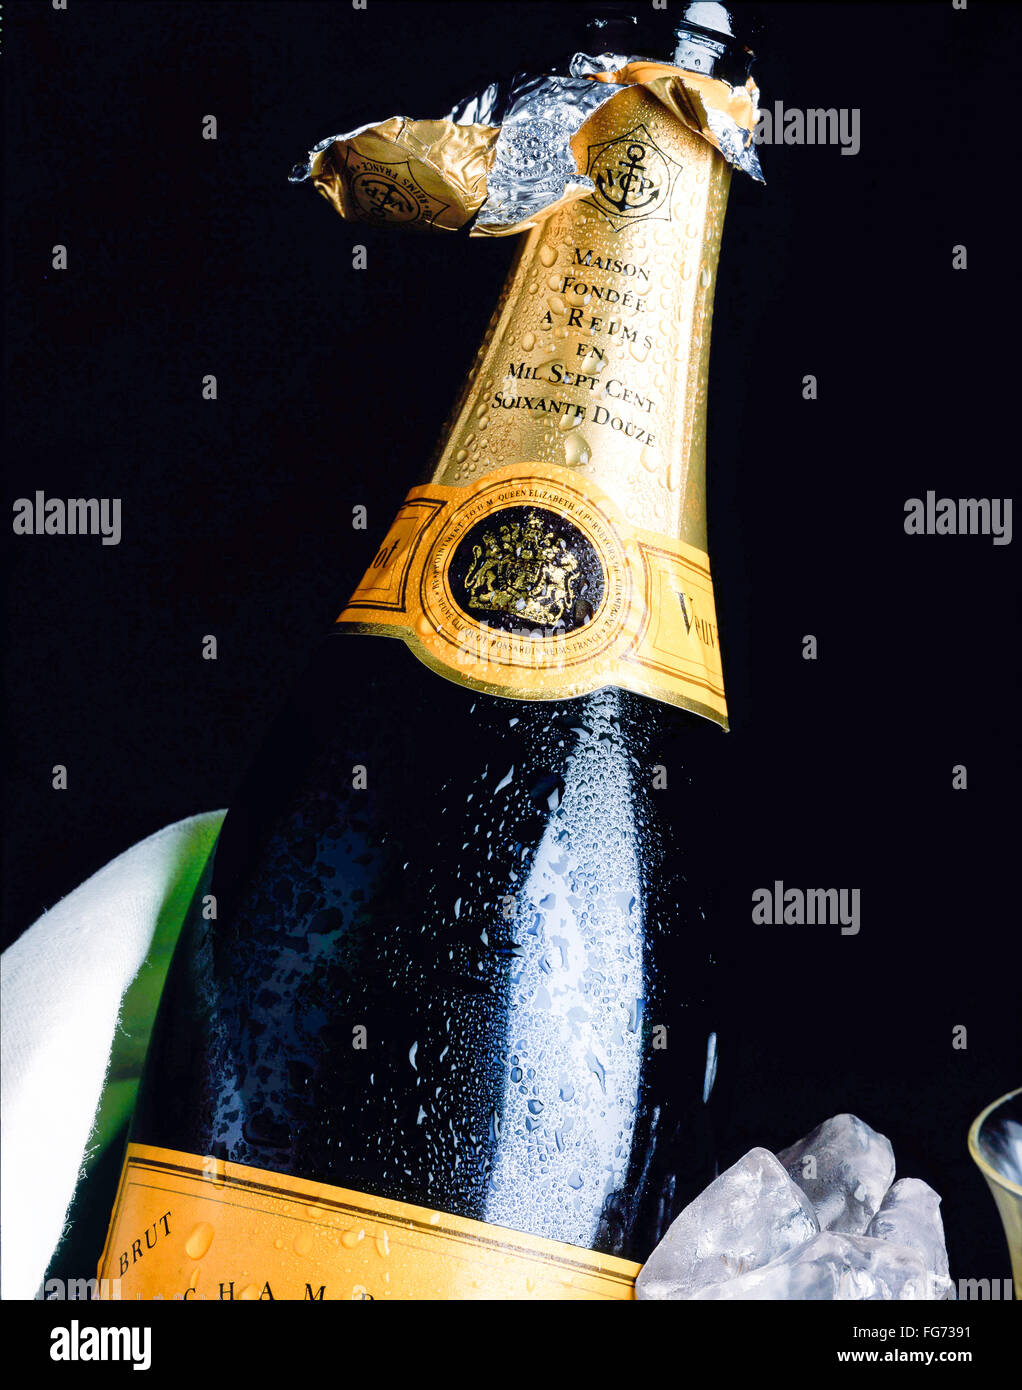 Open bottle of Veuve Clicquot champagne in ice-bucket, London, England, United Kingdom - Stock Image